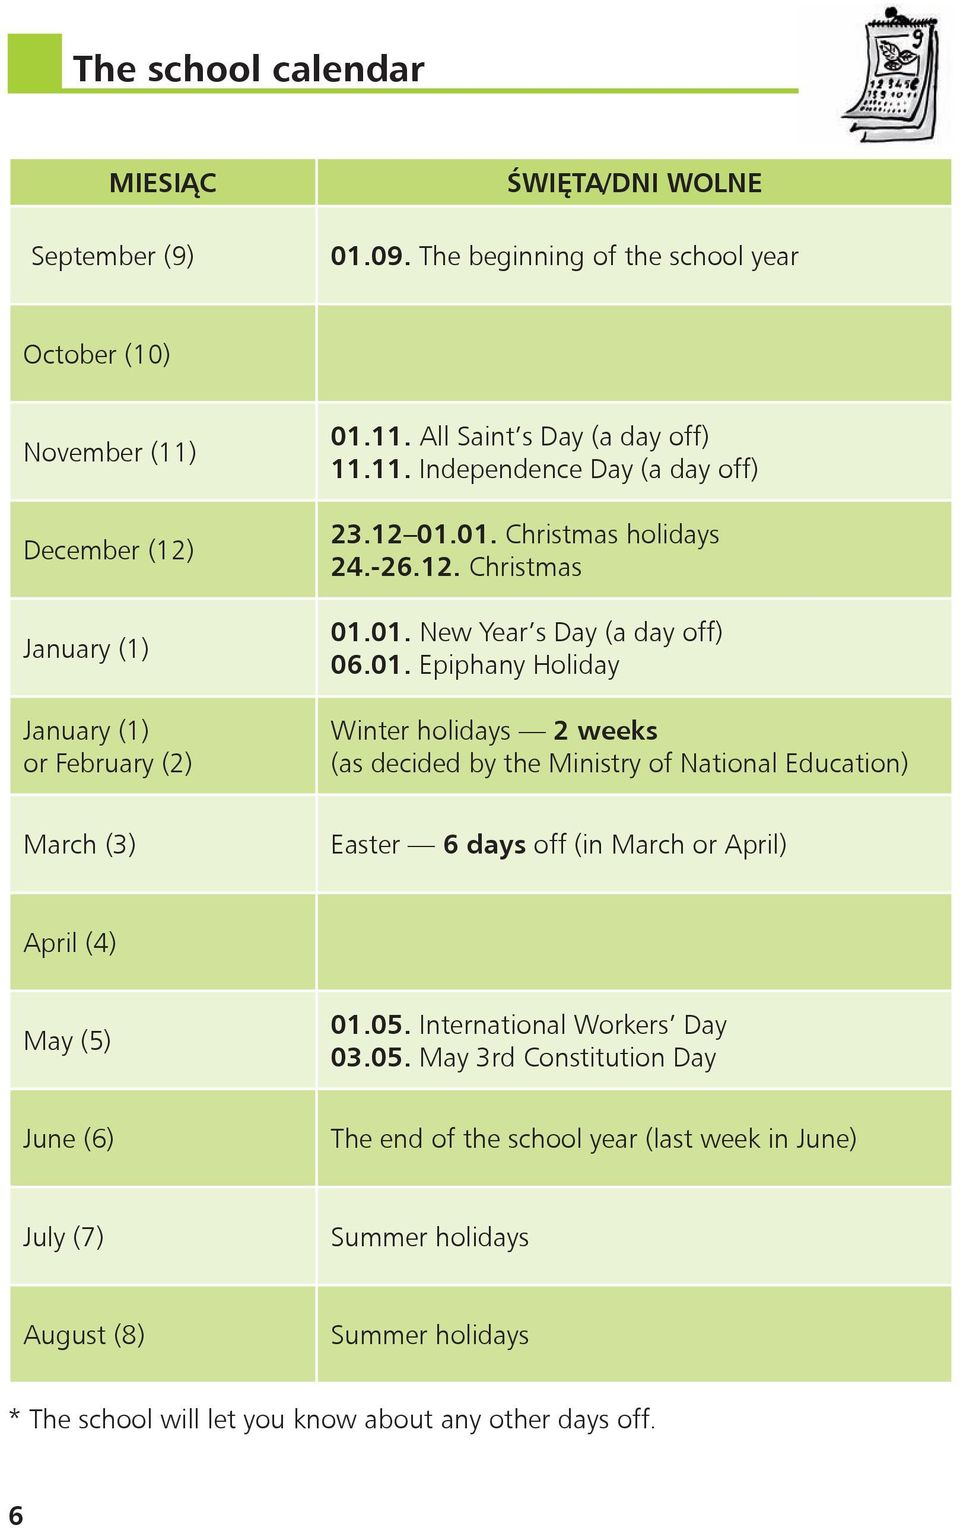 01. Christmas holidays 24.-26.12. Christmas 01.01. New Year s Day (a day off) 06.01. Epiphany Holiday Winter holidays 2 weeks (as decided by the Ministry of National Education) March (3) Easter 6 days off (in March or April) April (4) May (5) 01.